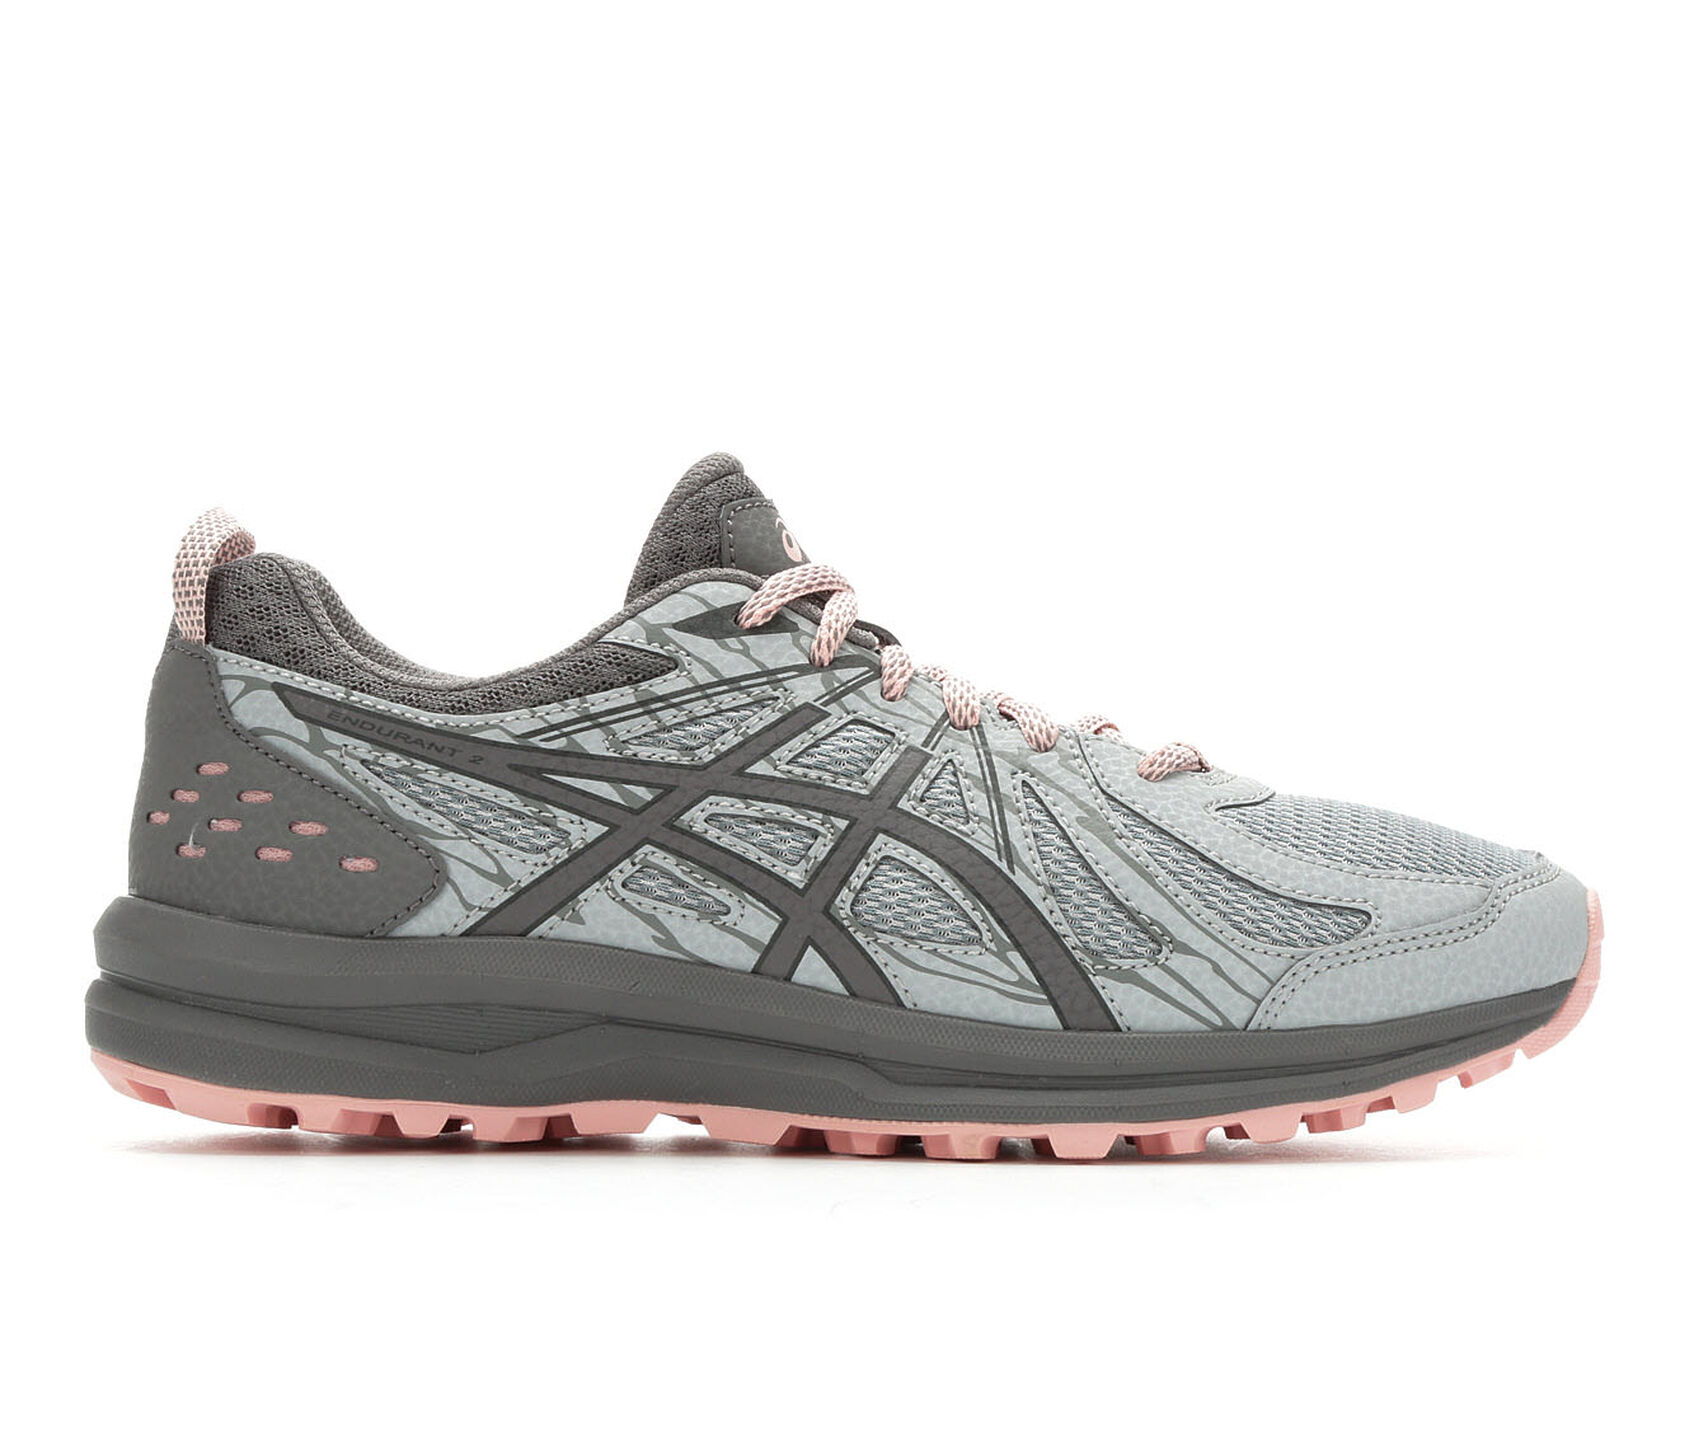 Women's ASICS Frequent Trail Running Shoes | Shoe Carnival